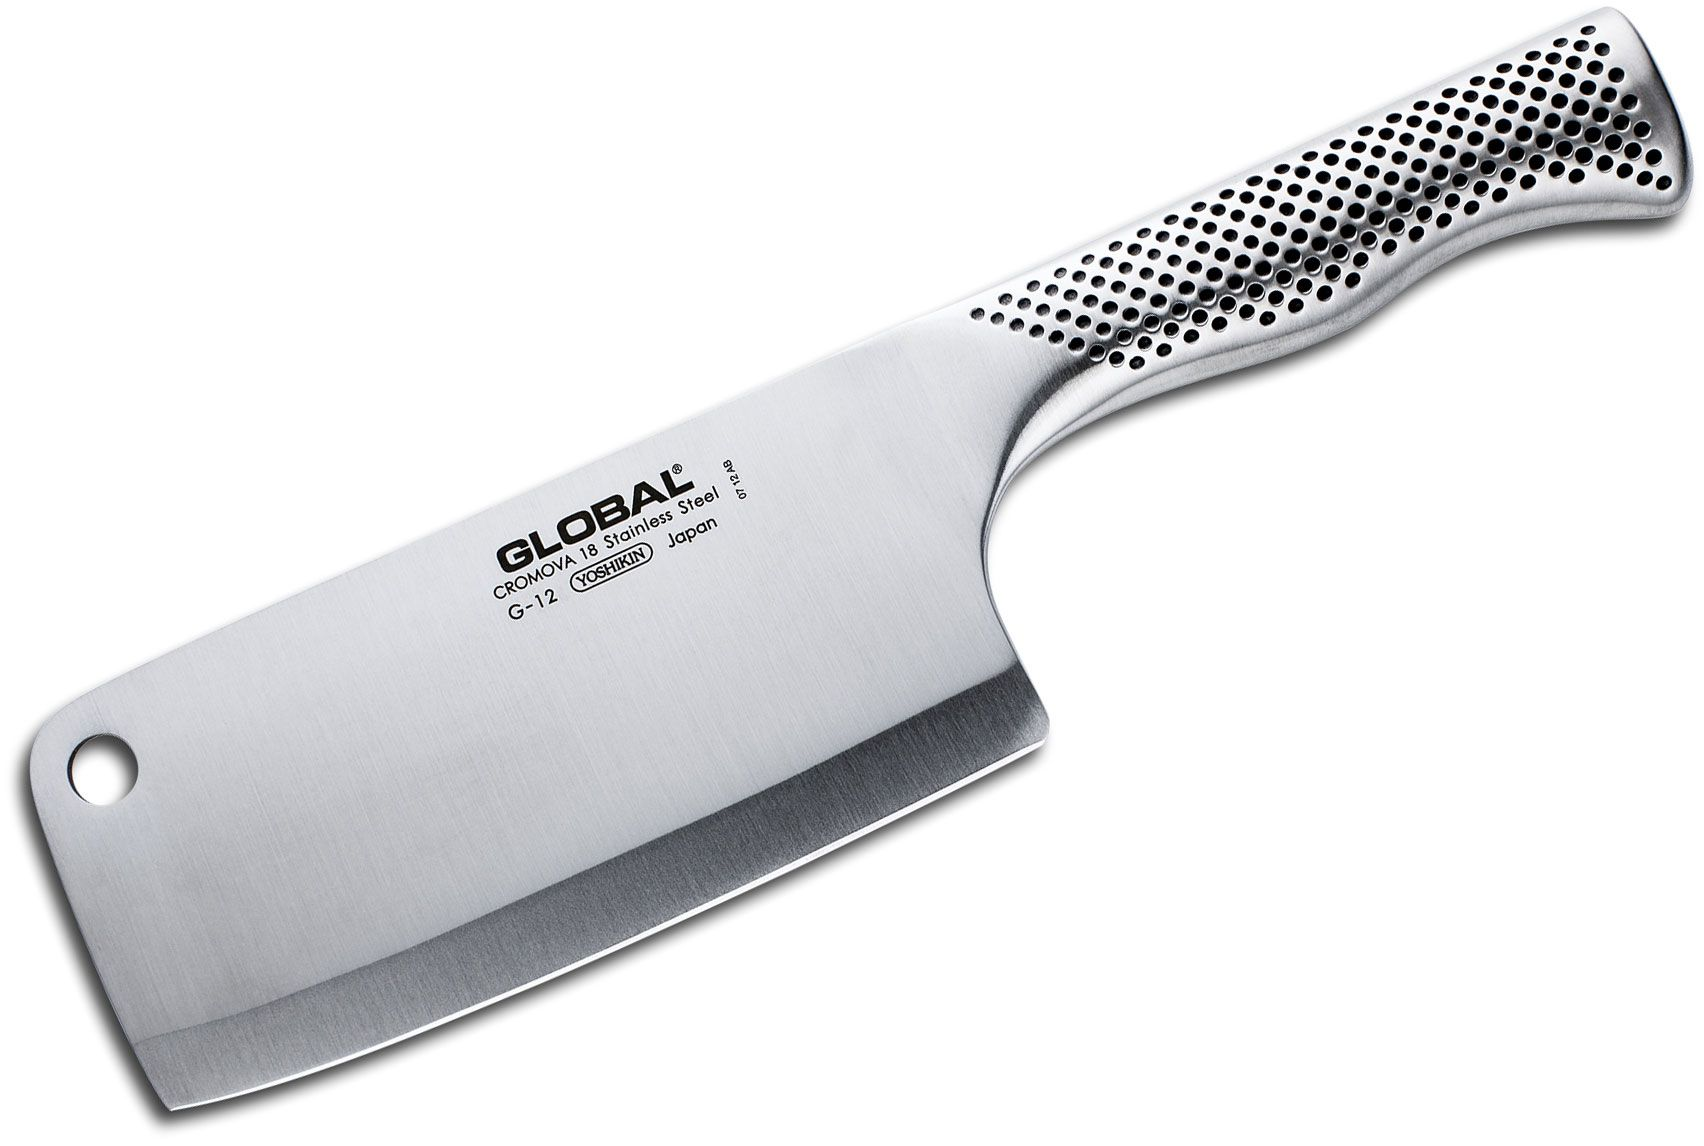 Global G-12 Classic 6.25 inch Meat Cleaver